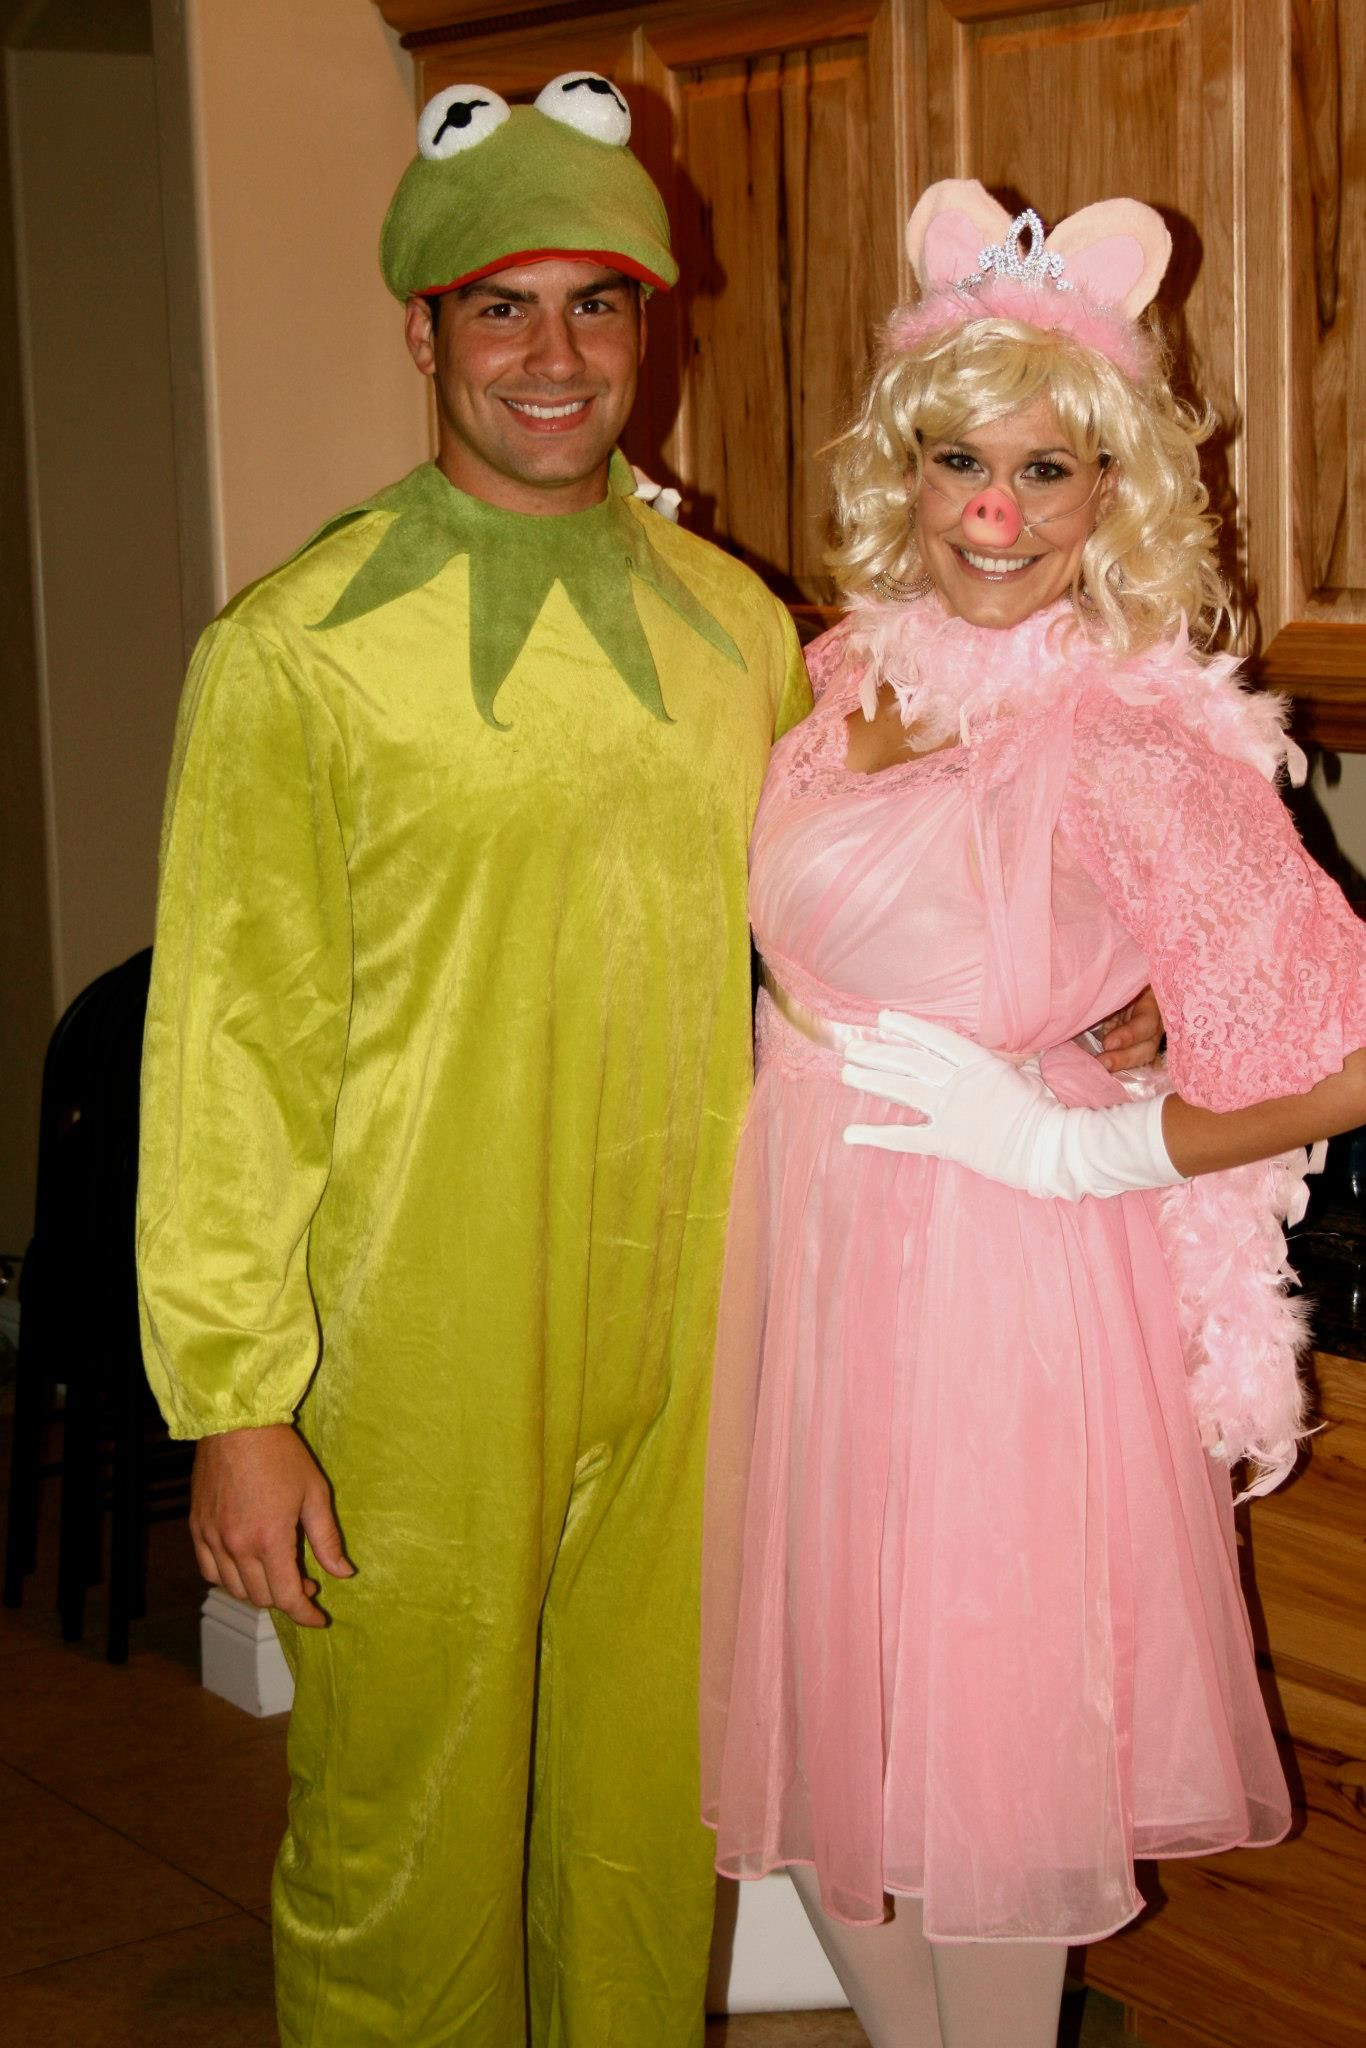 Kermit The Frog Costume DIY  Kermit the Frog and Miss Piggy Homemade Adult Halloween